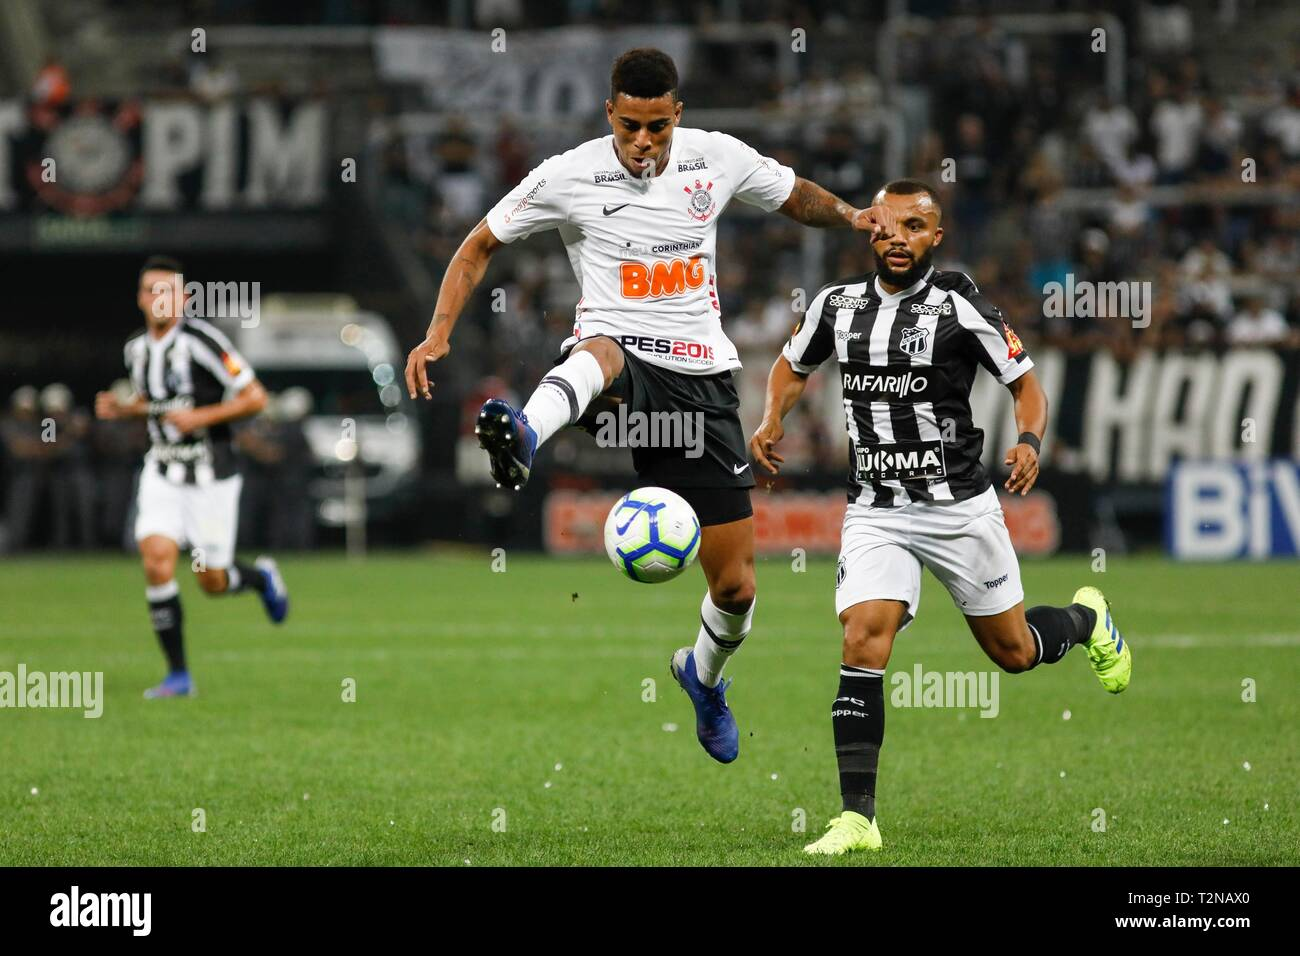 Sao Paulo Sp 03 04 2019 Corinthians X Ceara Gustavo During The Match Between Corinthians And Ceara